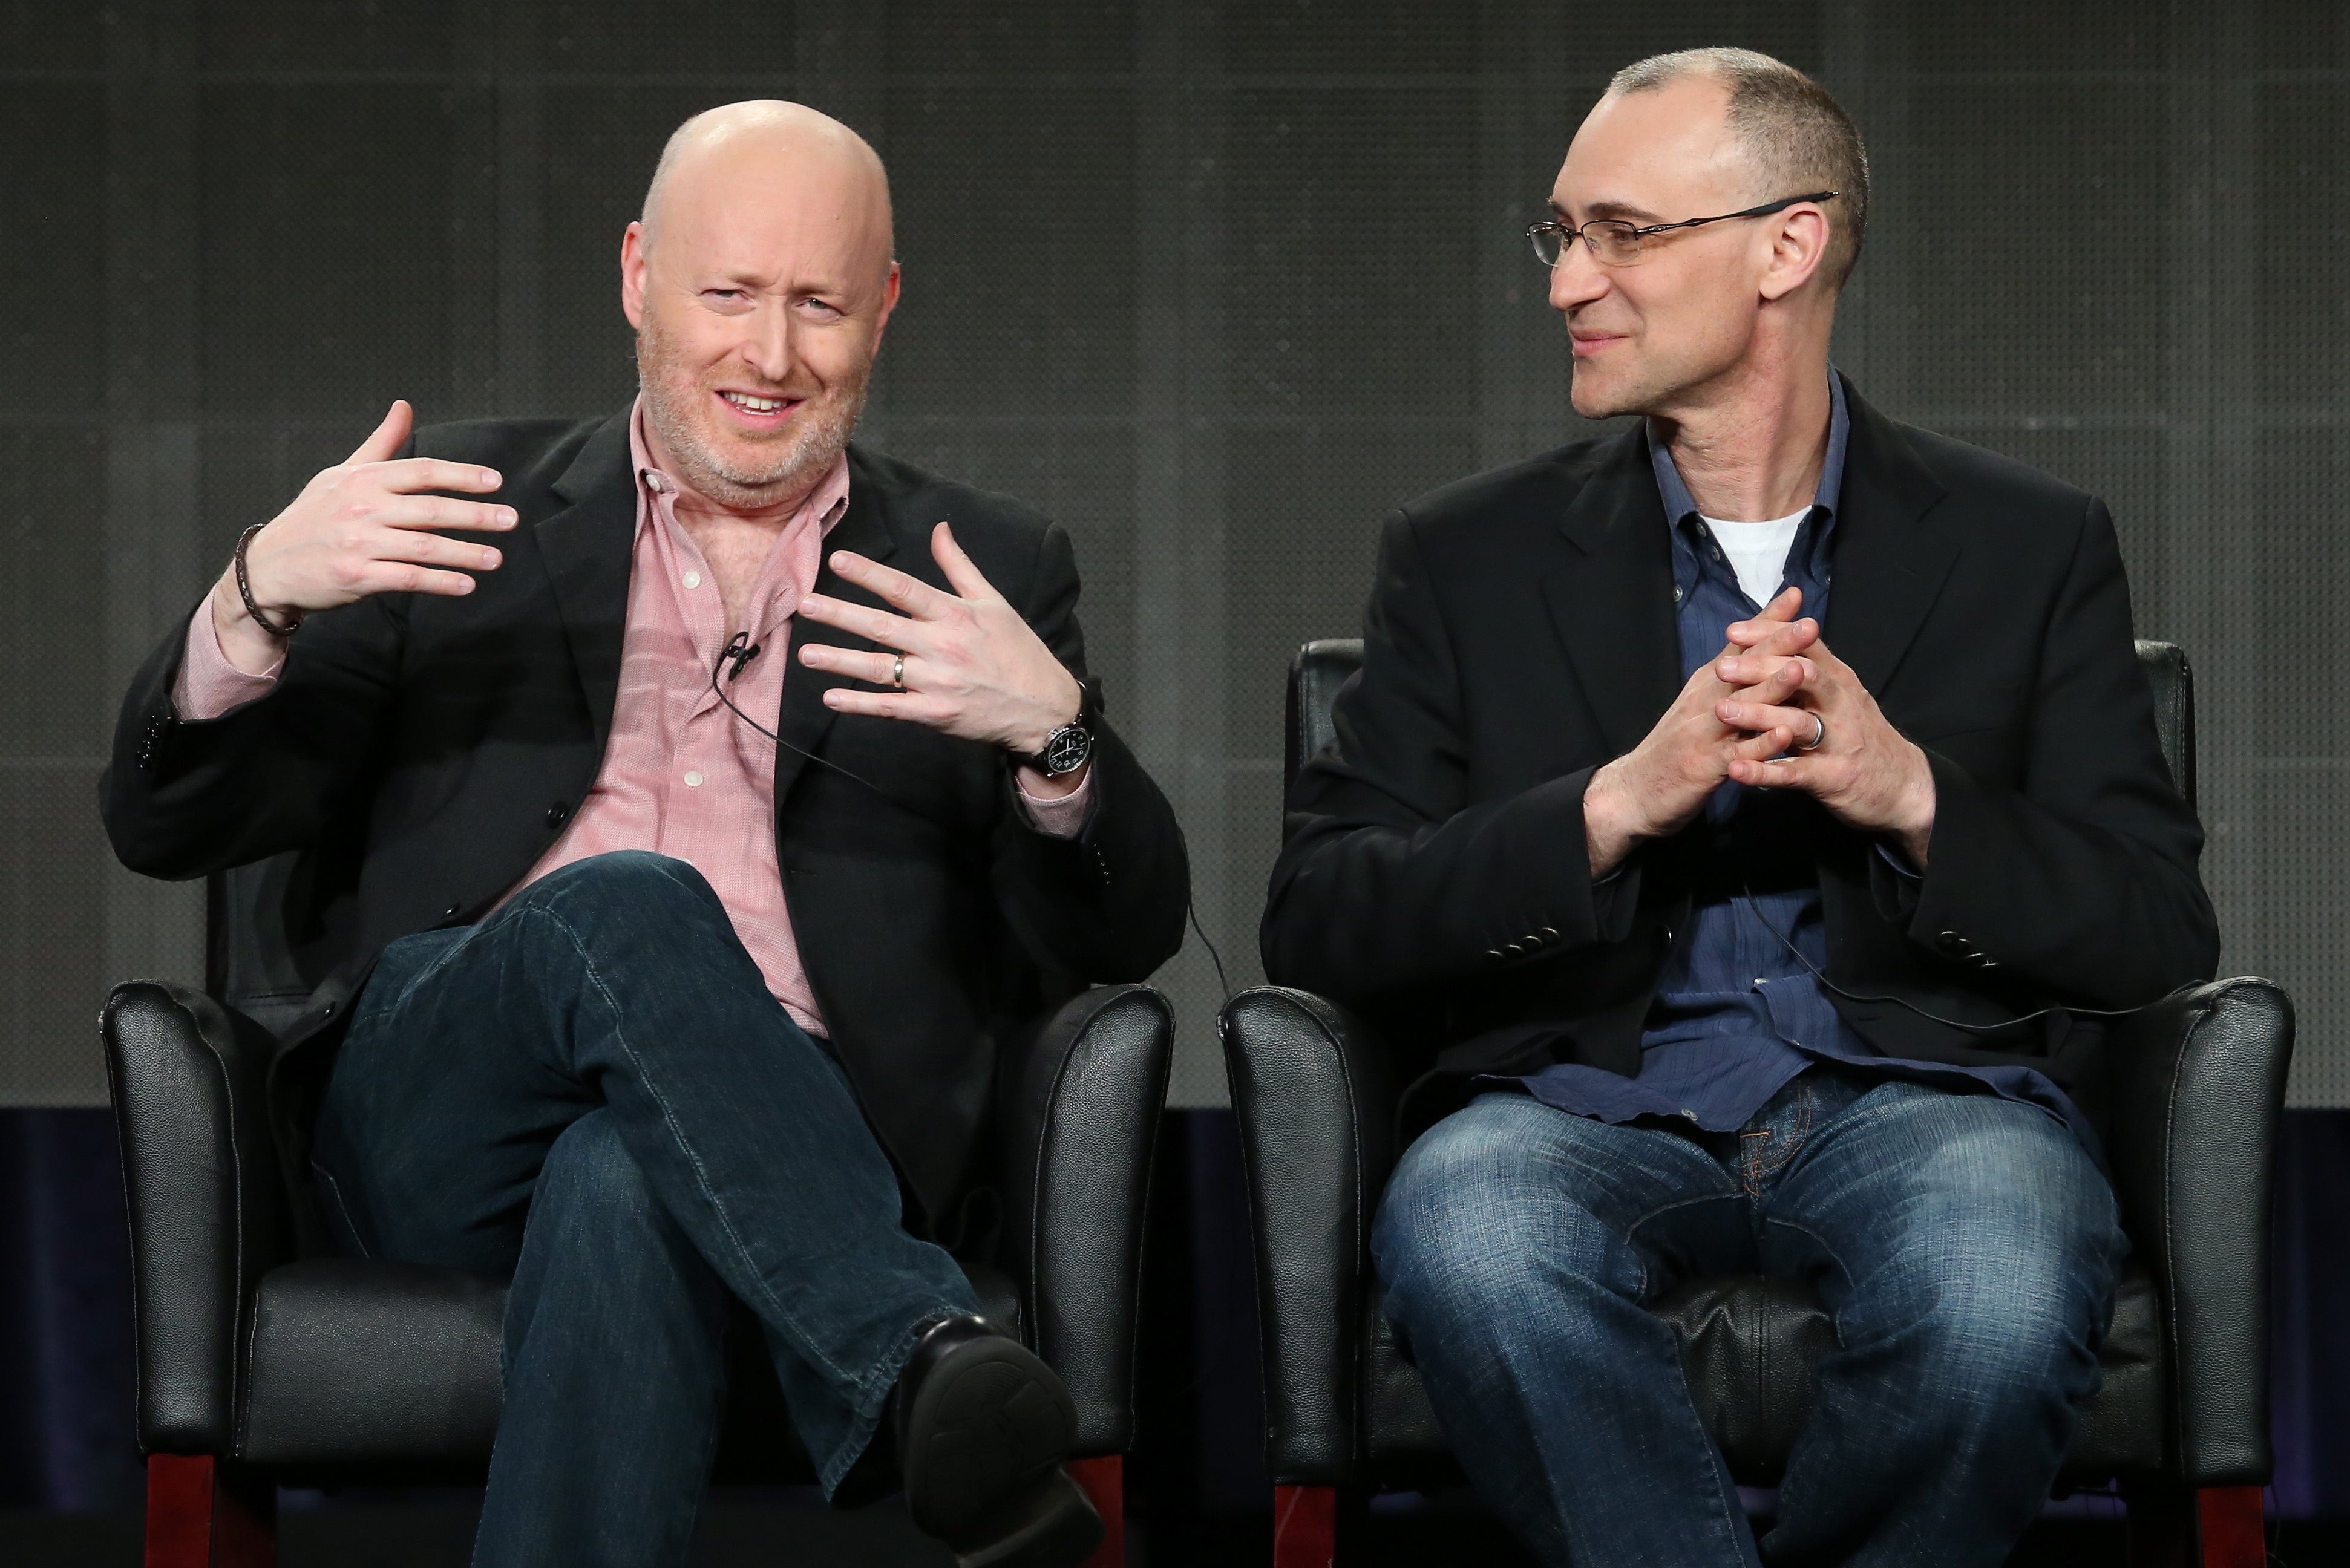 Creator/executive producer/writer Joe Weisberg and Executive producer/writer Joel Fields speak onstage during the 'The Americans' panel discussion at the FX Networks portion of the Television Critics Association press tour at  on Jan. 18 in California.